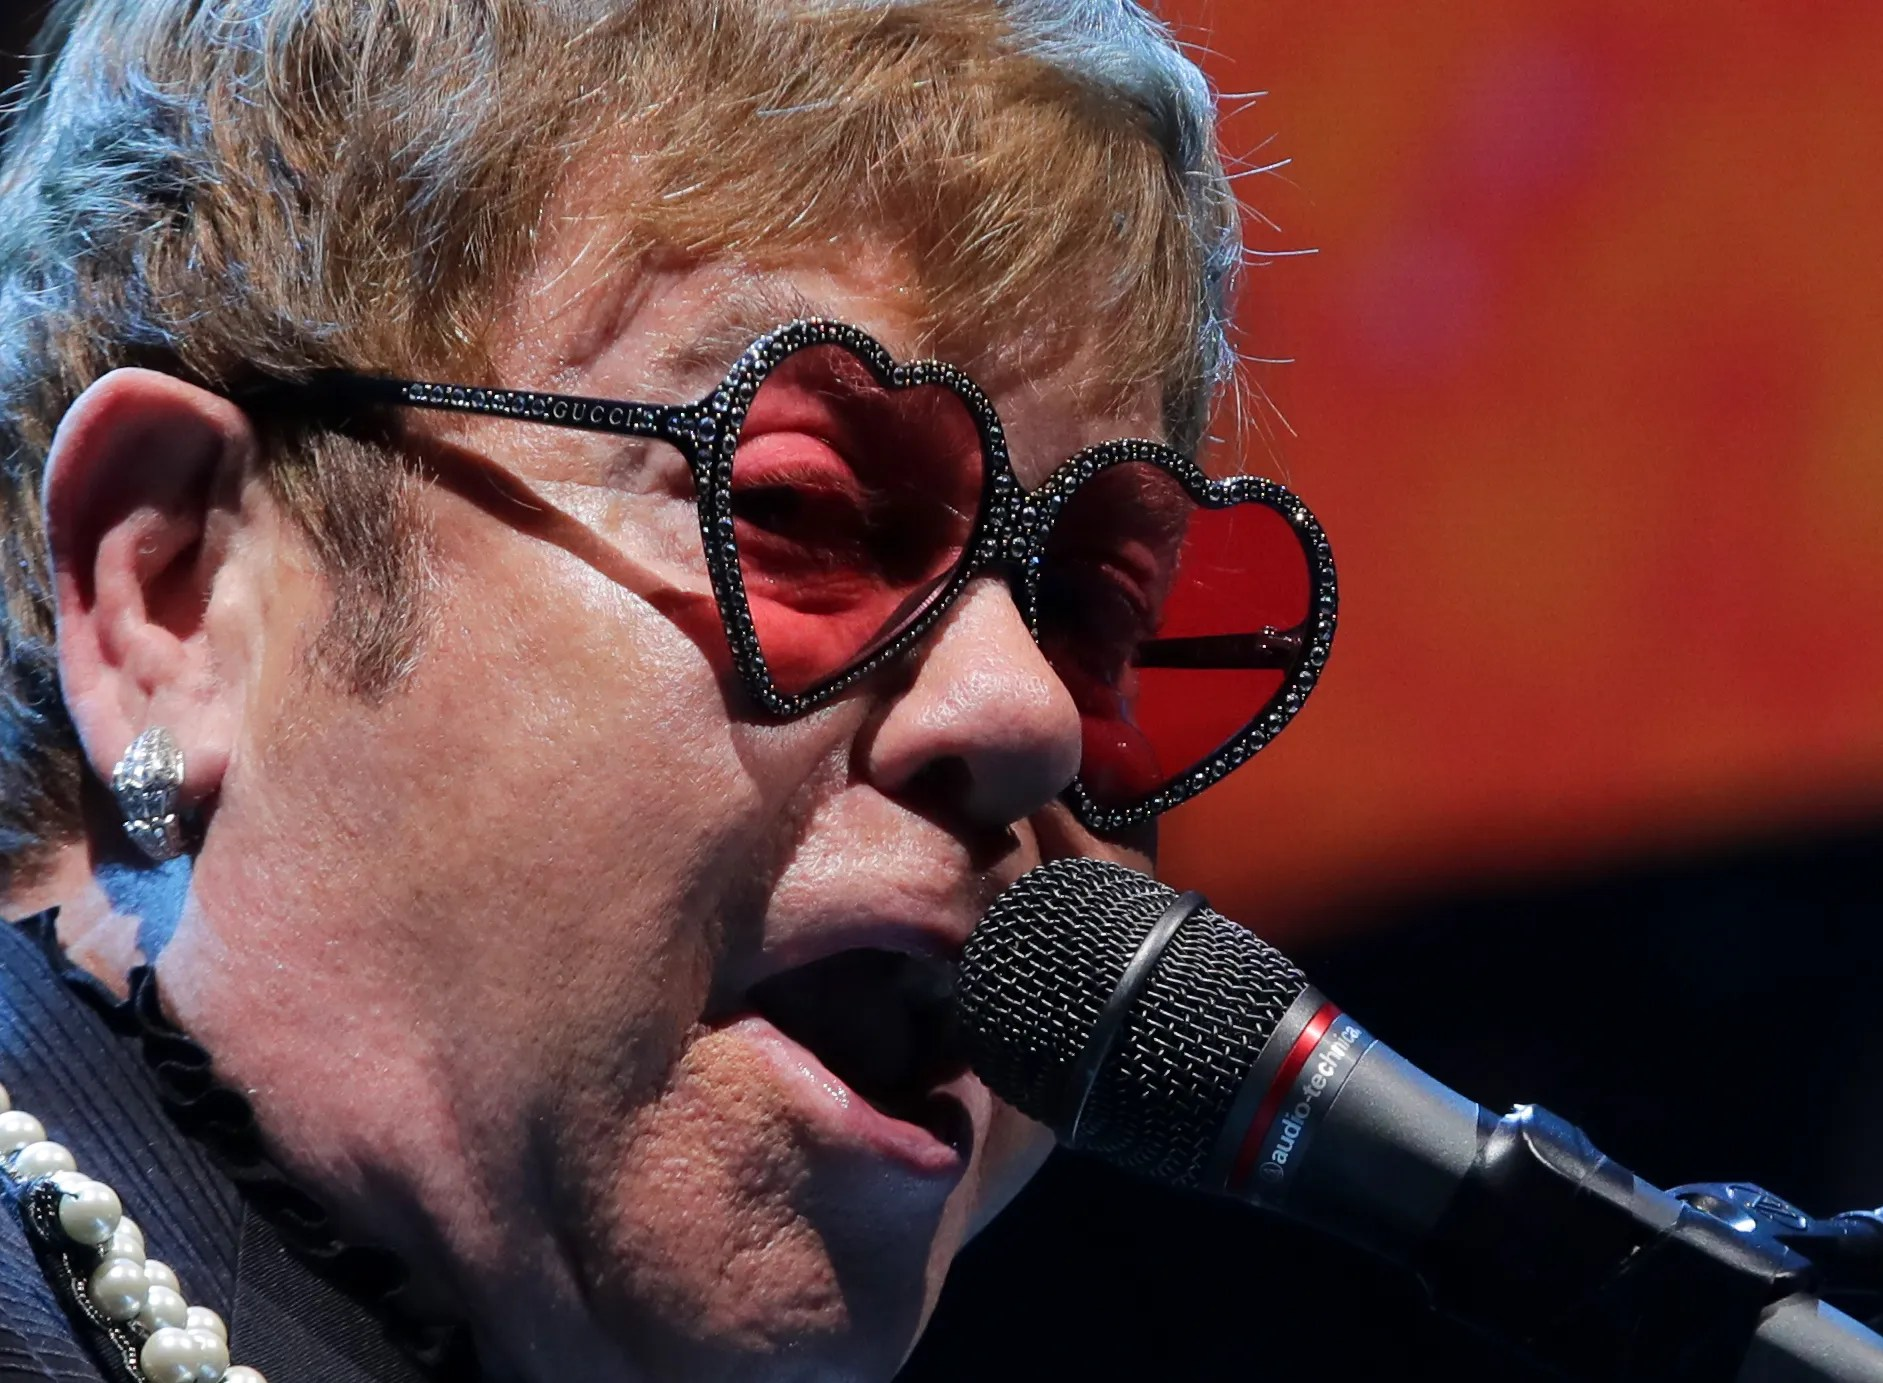 Elton john says goodbye in spectacular fashion at the kfc yum center also   farewell to louisville lit up rh courier journal